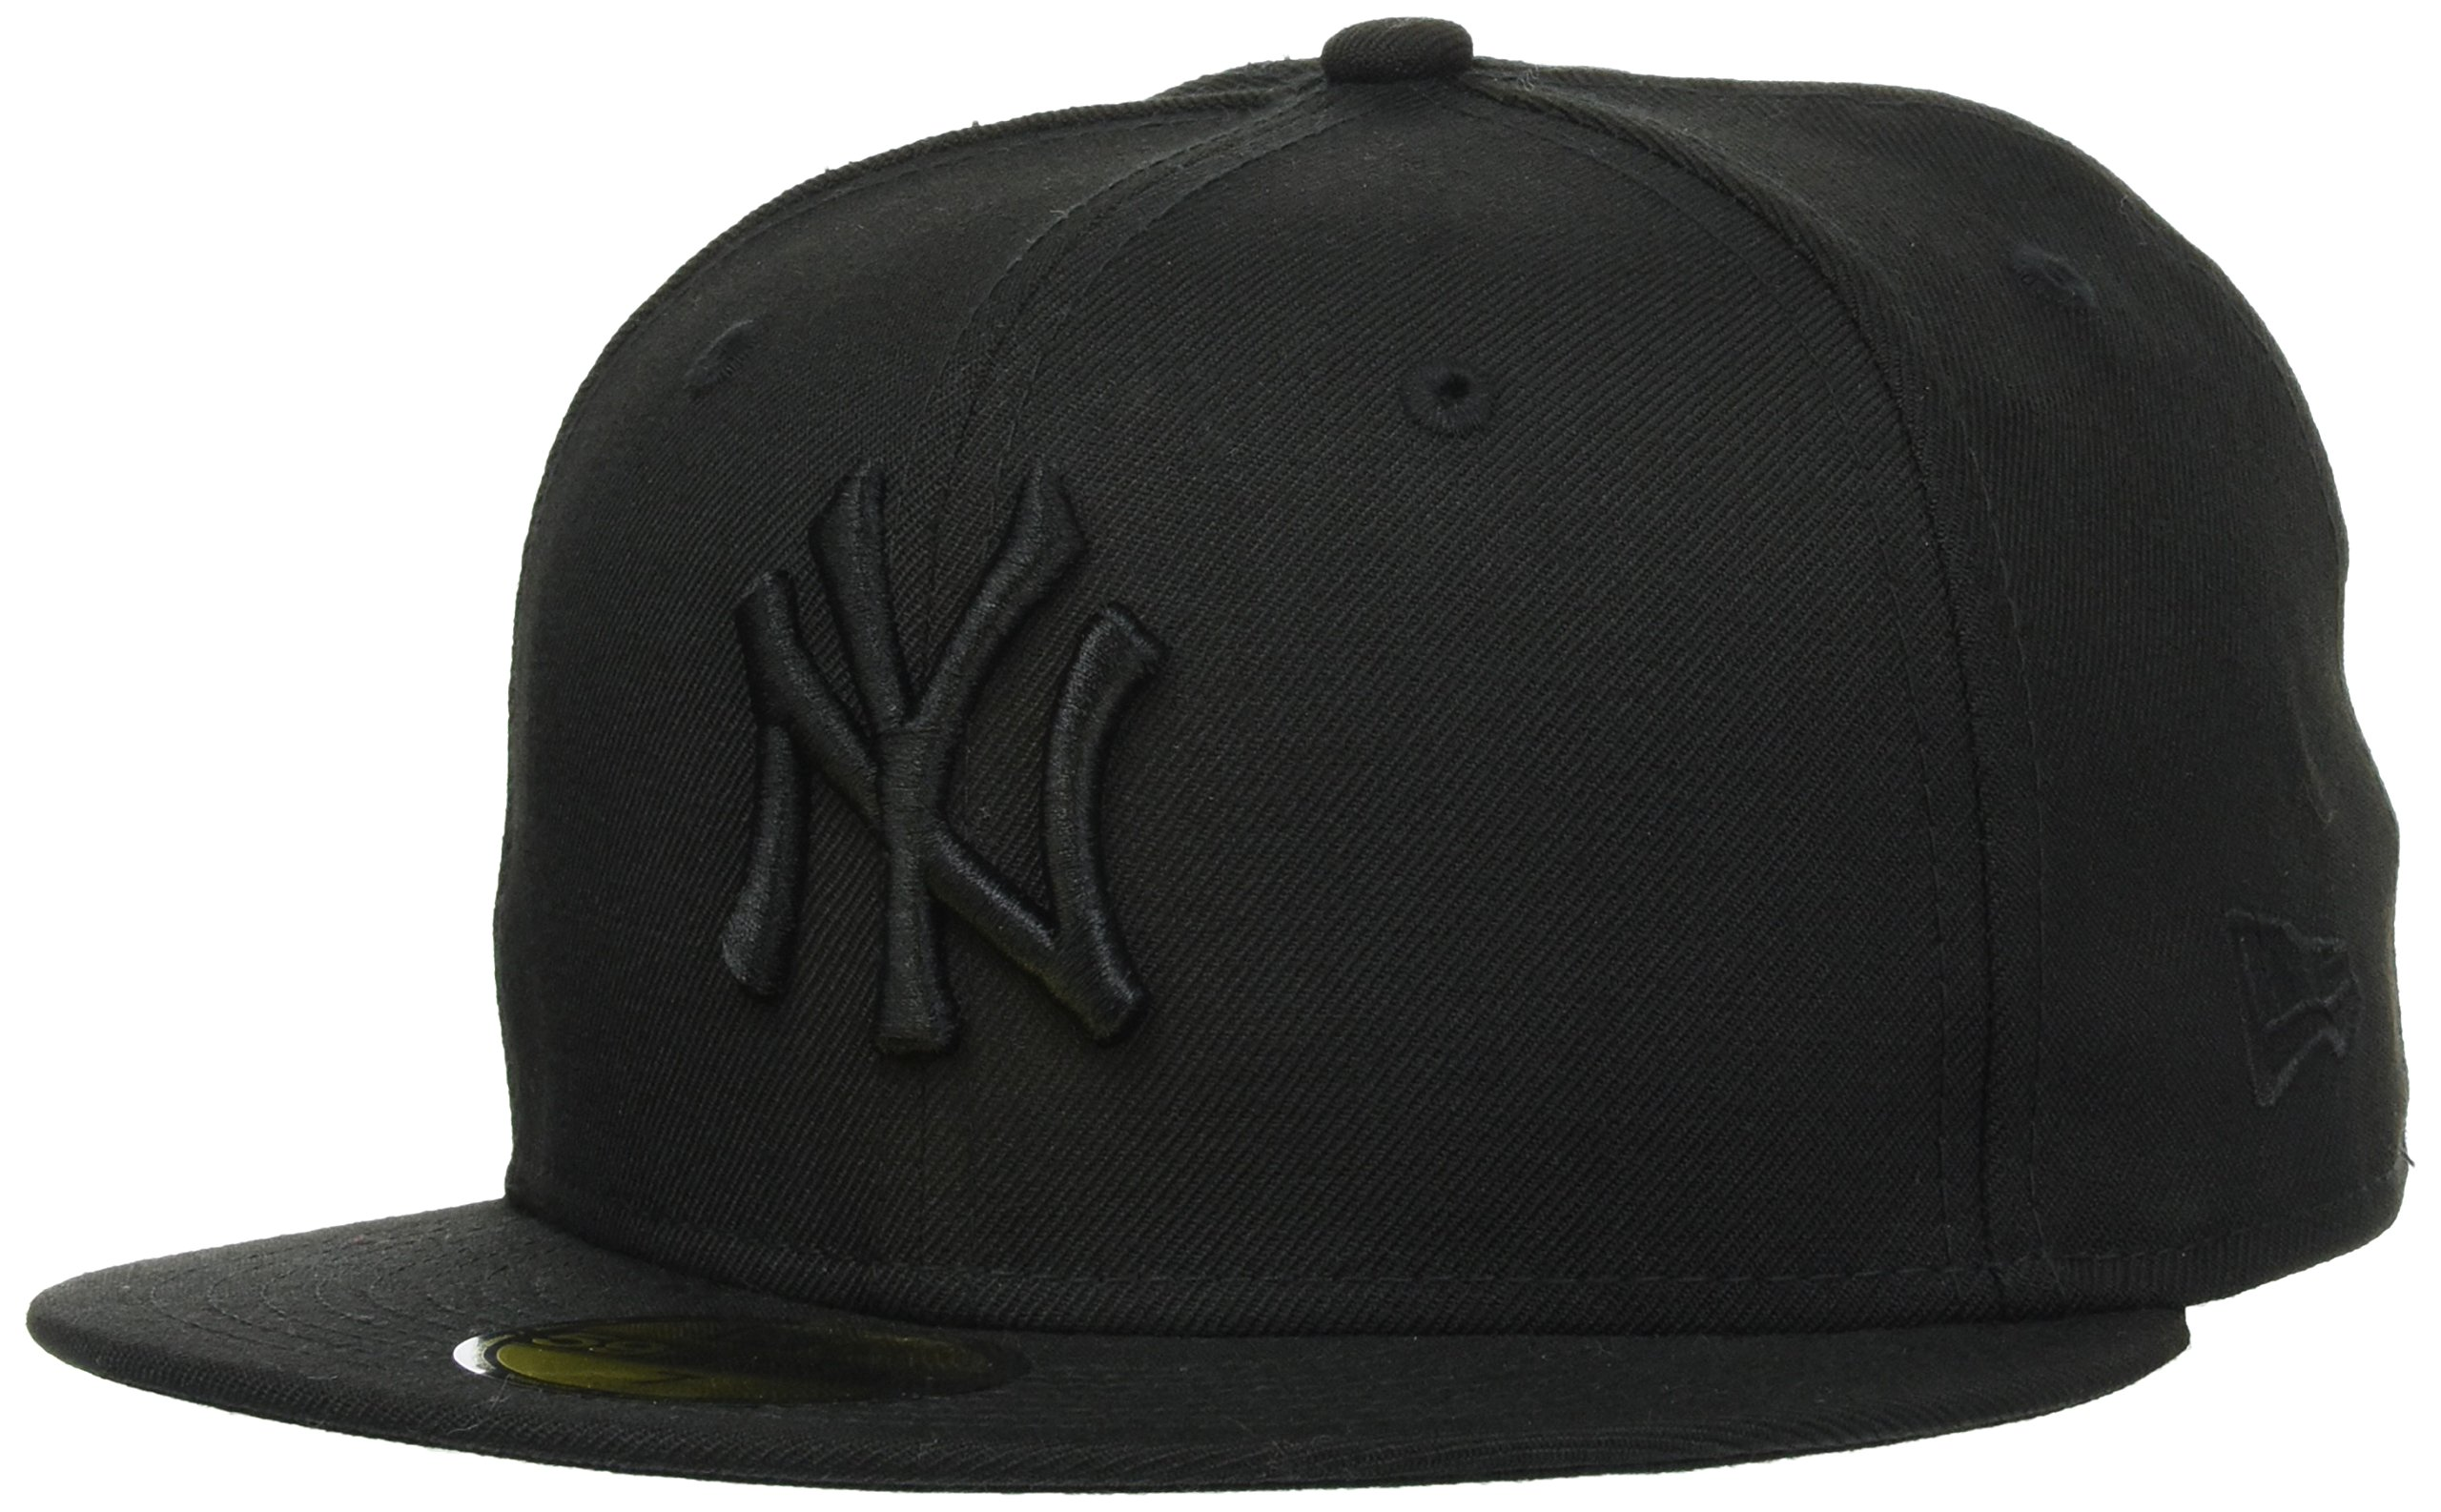 NEW ERA 59 FIFTY NY YANKEES CAPPELLO CON VISIERA COLORE NERO BLACK BLACK 002f15f9f97f